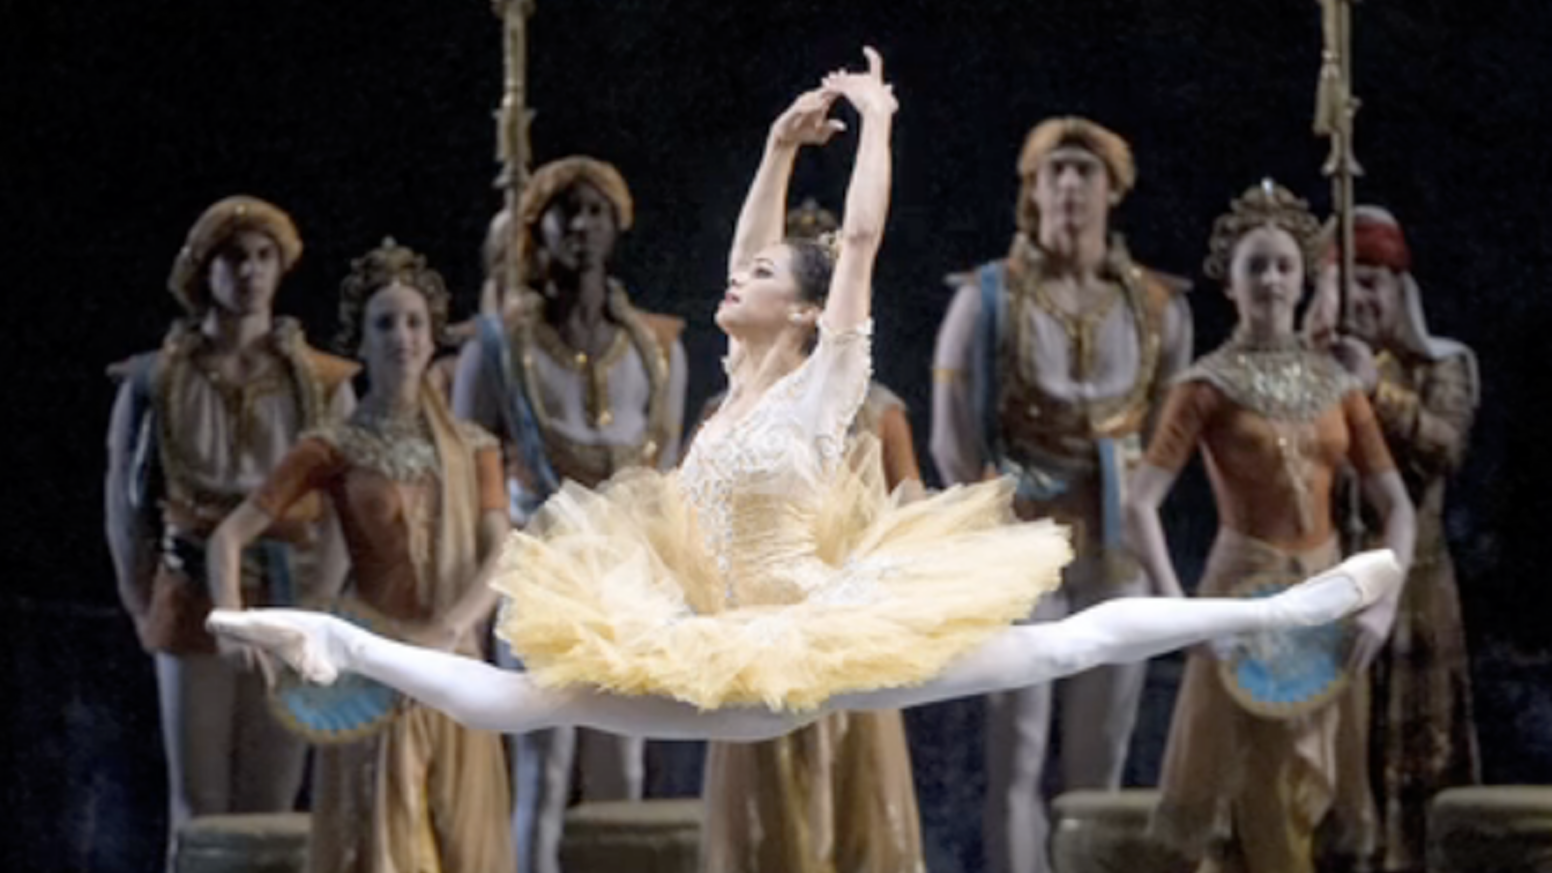 The film is a feature documentary on African American ballet dancer Misty Copeland.